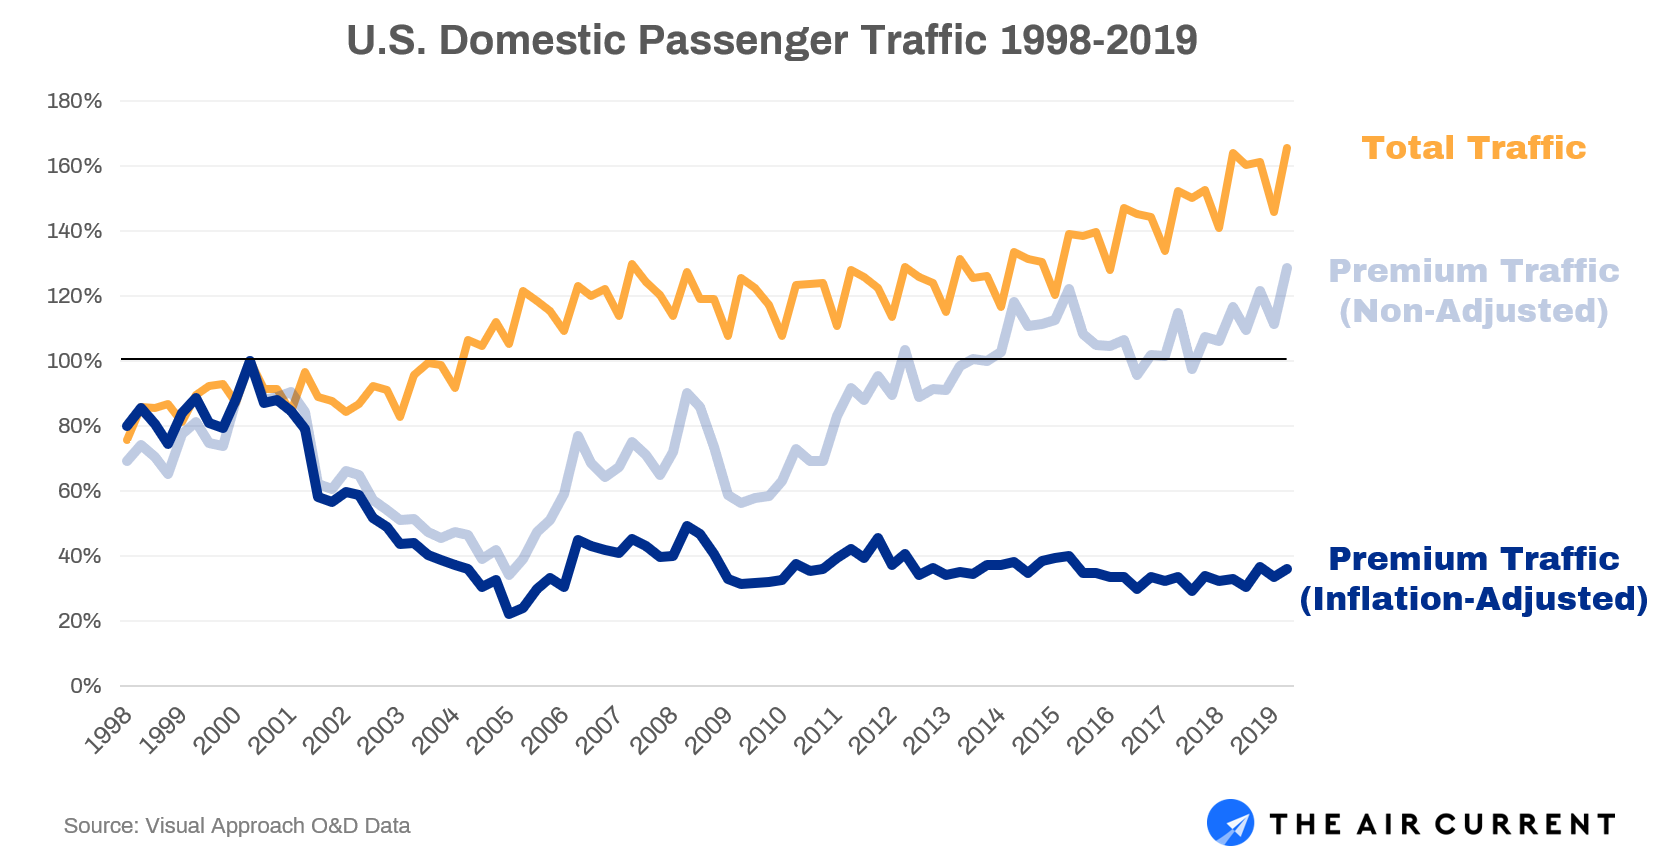 Domestic traffic over time